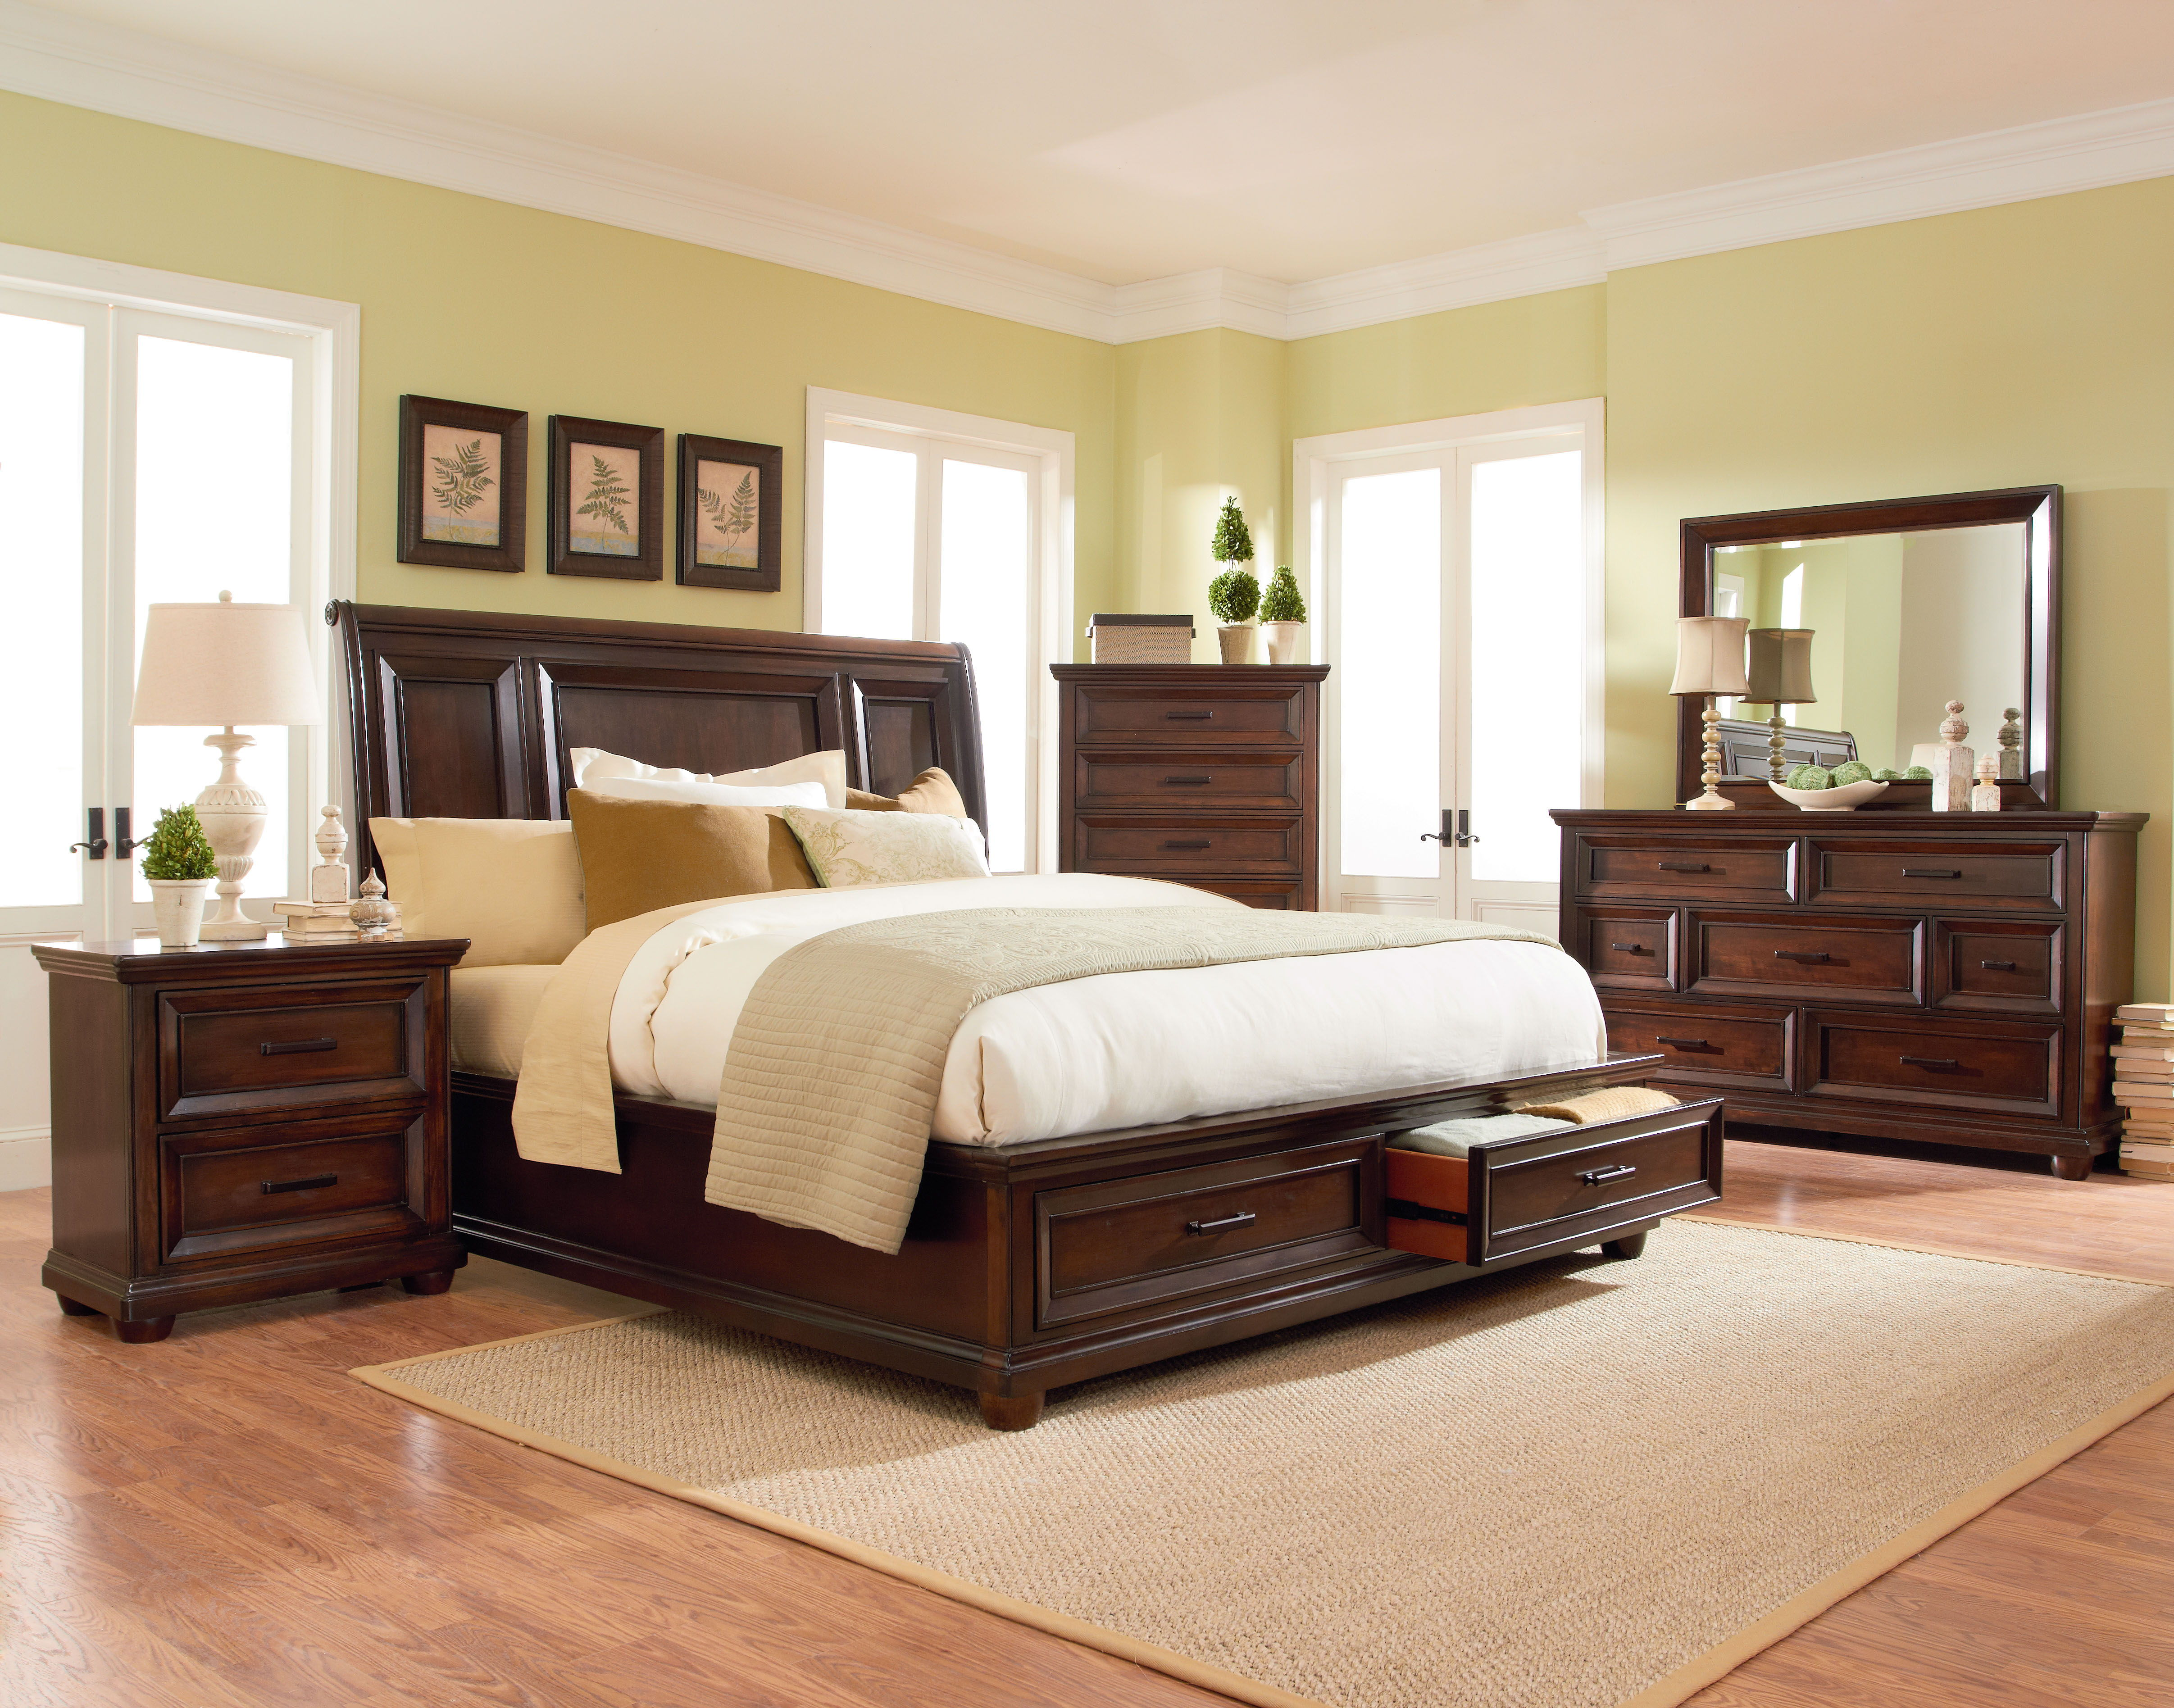 Standard furniture vineyard tobacco 2pc bedroom set with queen platform bed the classy home for Napa valley bedroom furniture